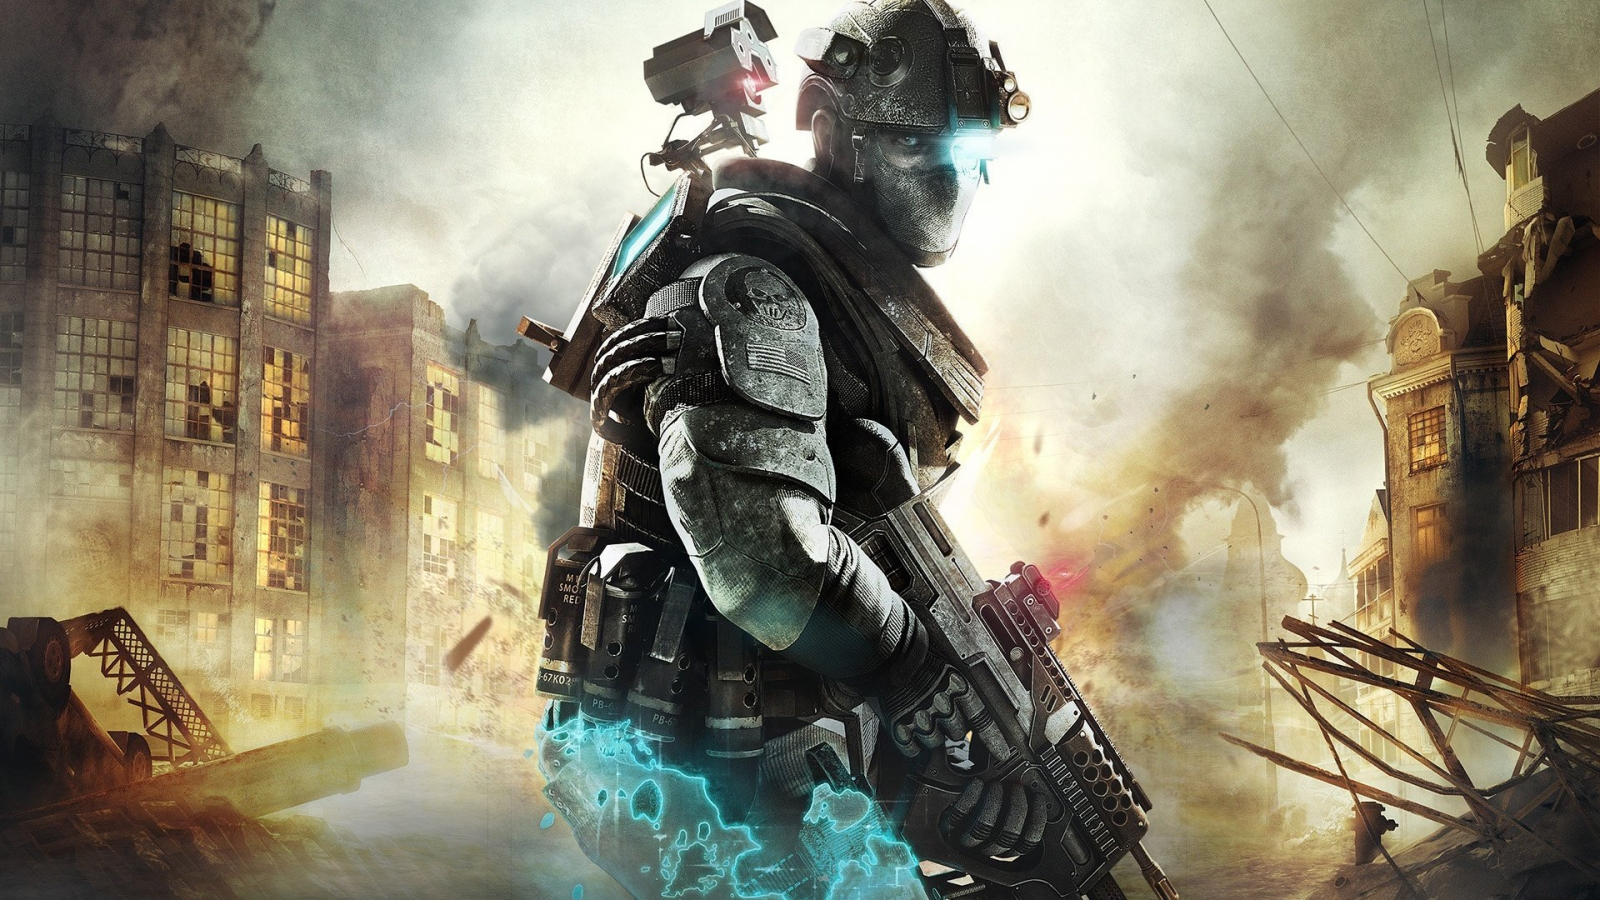 Ghost Recon Advanced Warfighter for 1600 x 900 HDTV resolution